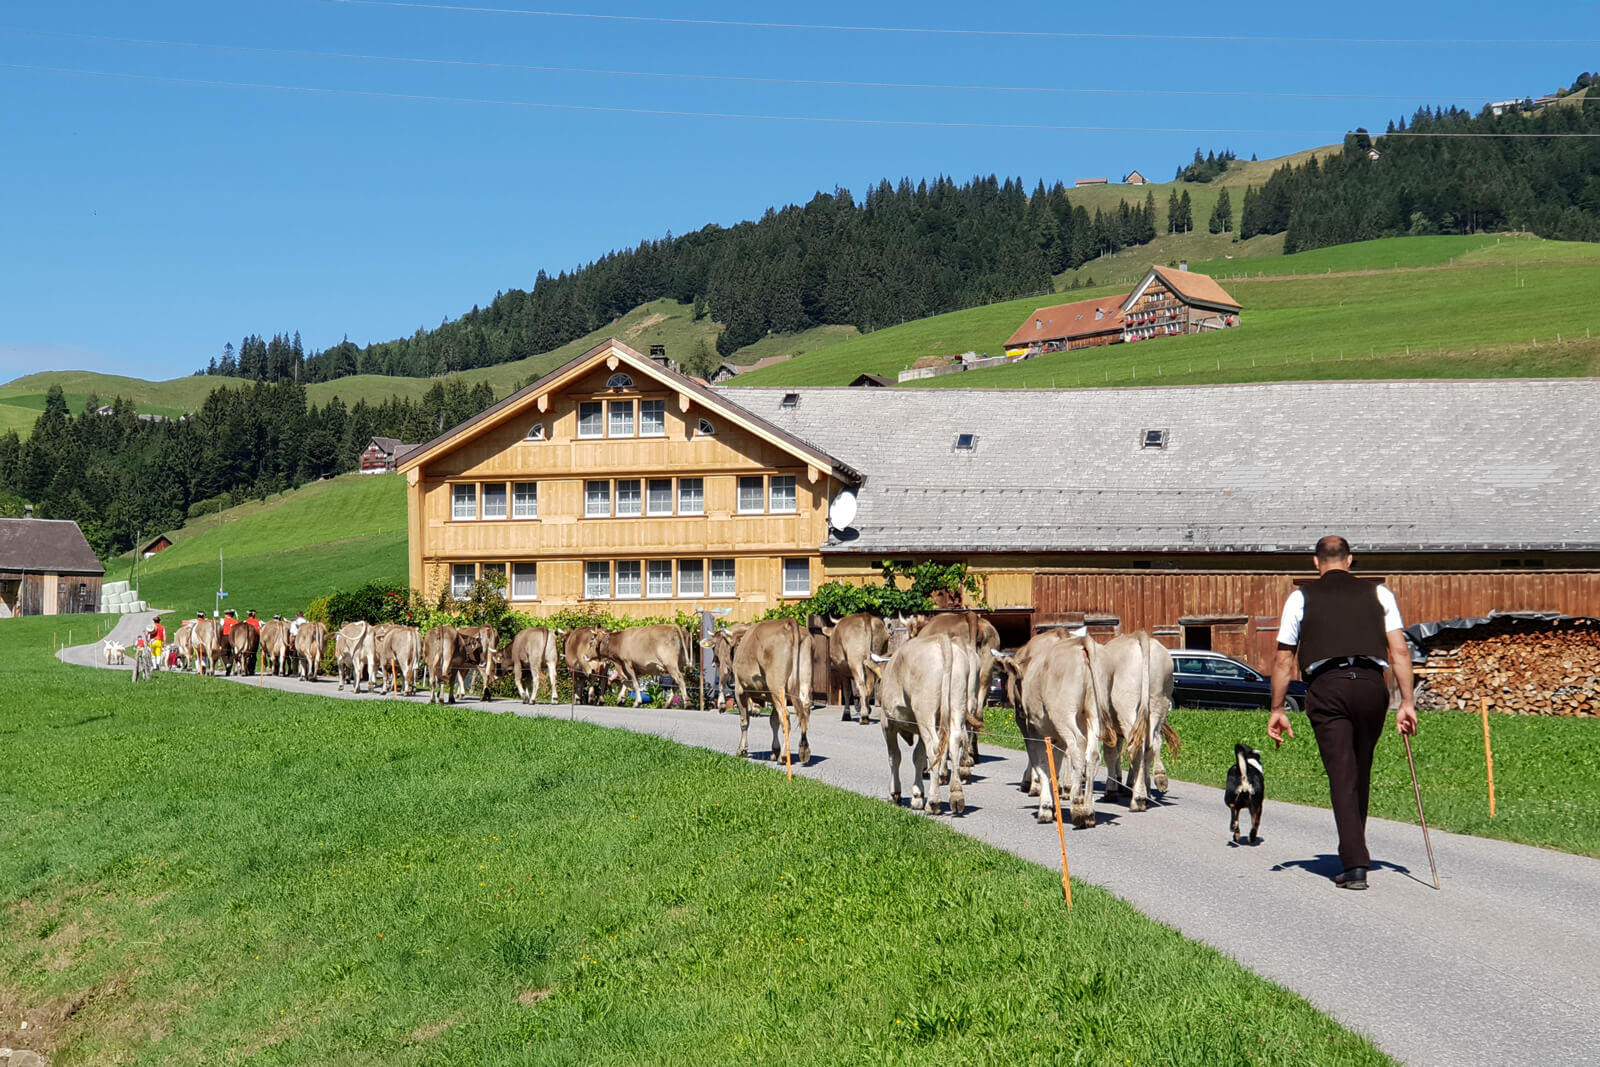 Alpabzug Alpine Cow Parade in Gonten